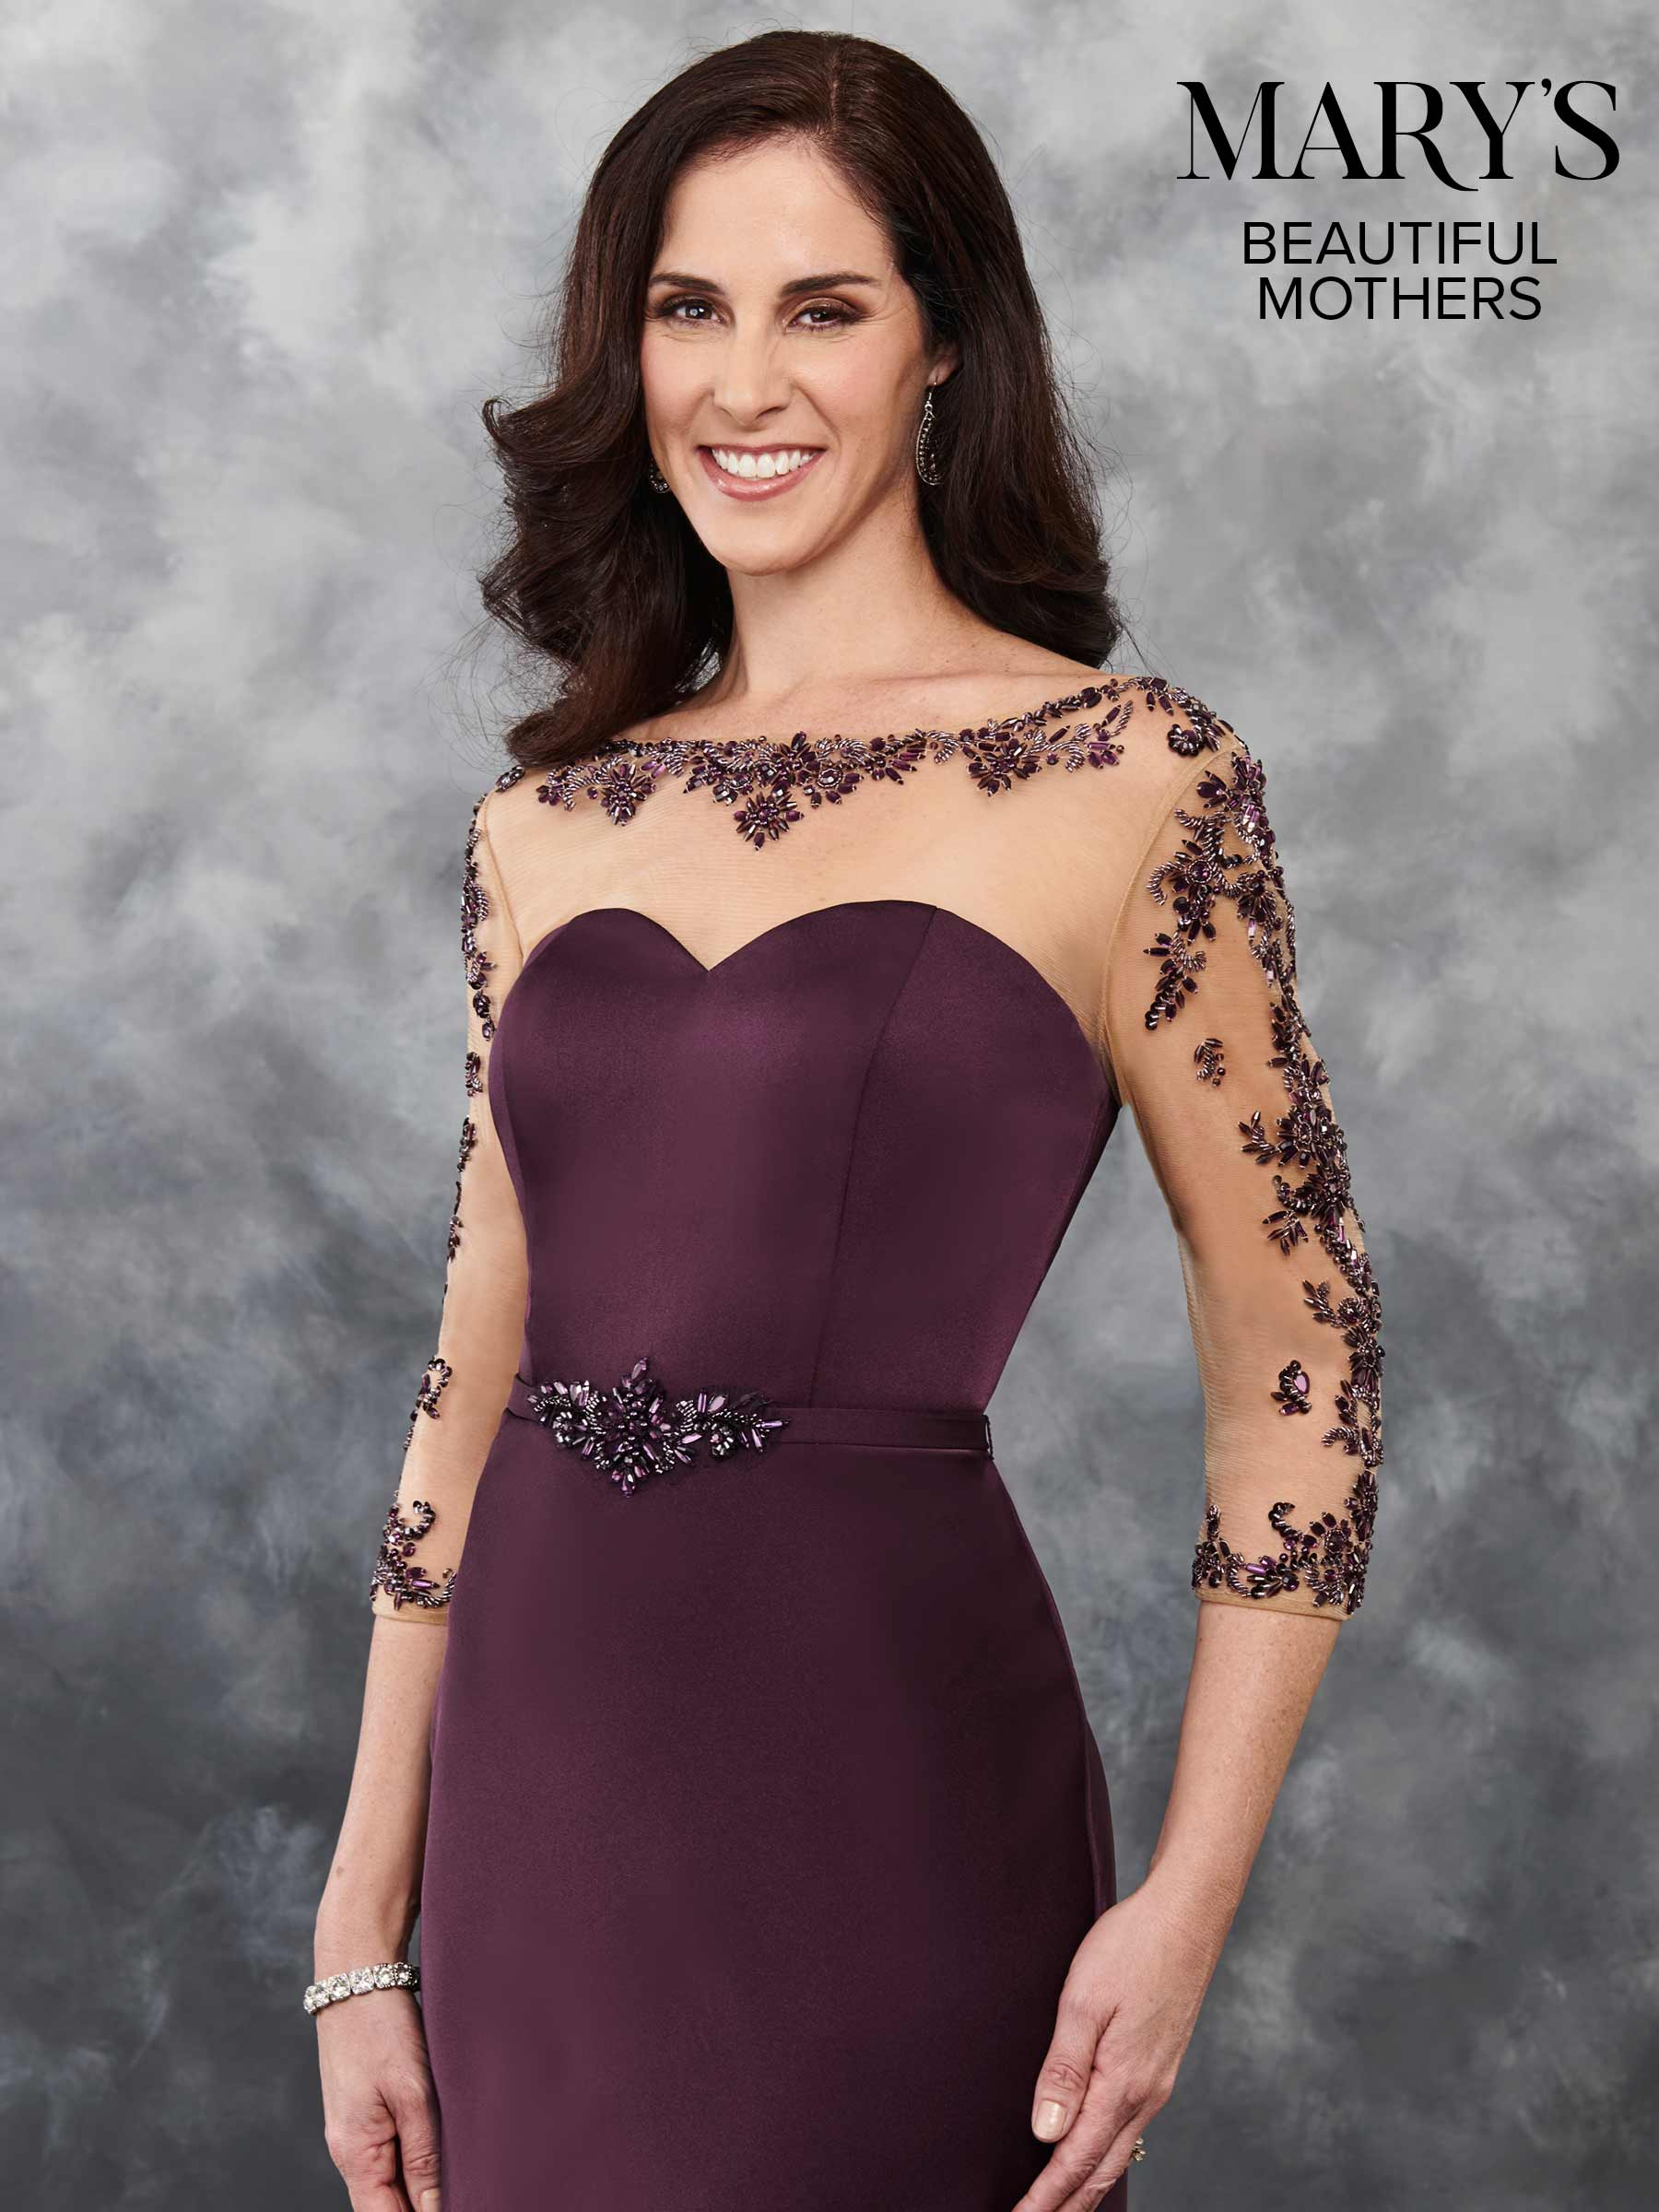 Mother Of The Bride Dresses | Beautiful Mothers | Style - MB8026